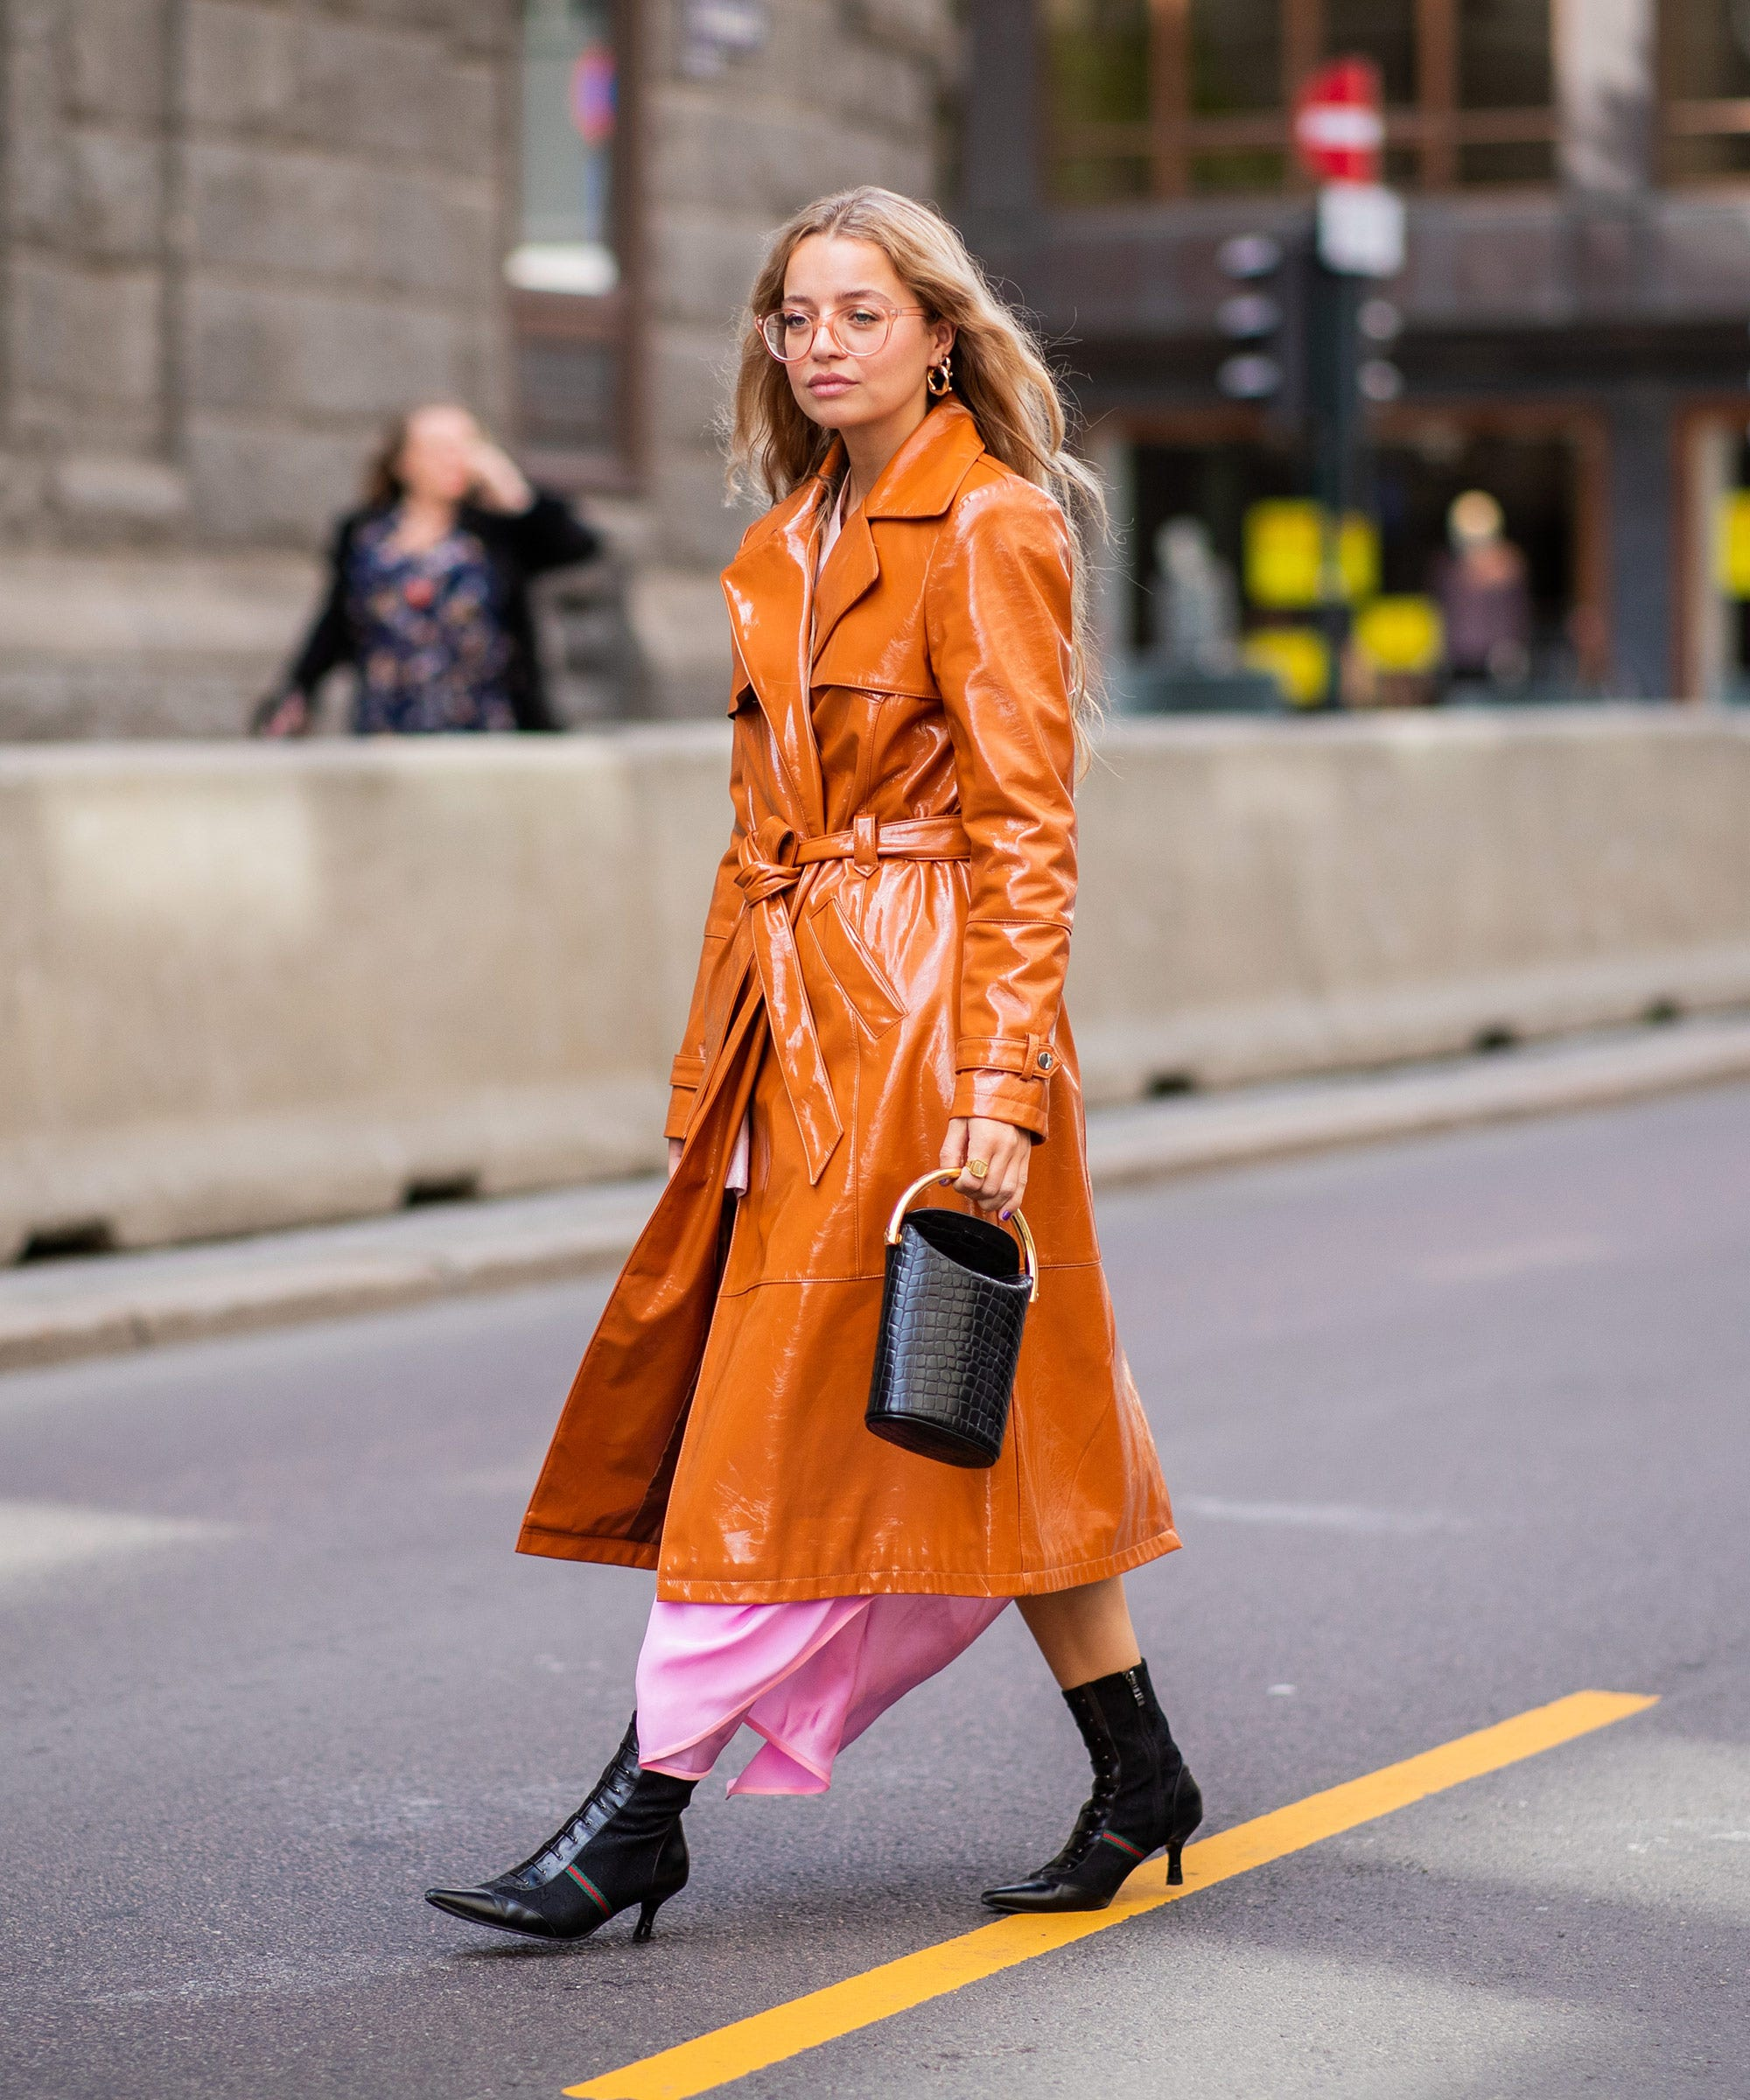 f4154a6b8 Best Women Winter Coat Trends 2018, Puffers And Trench